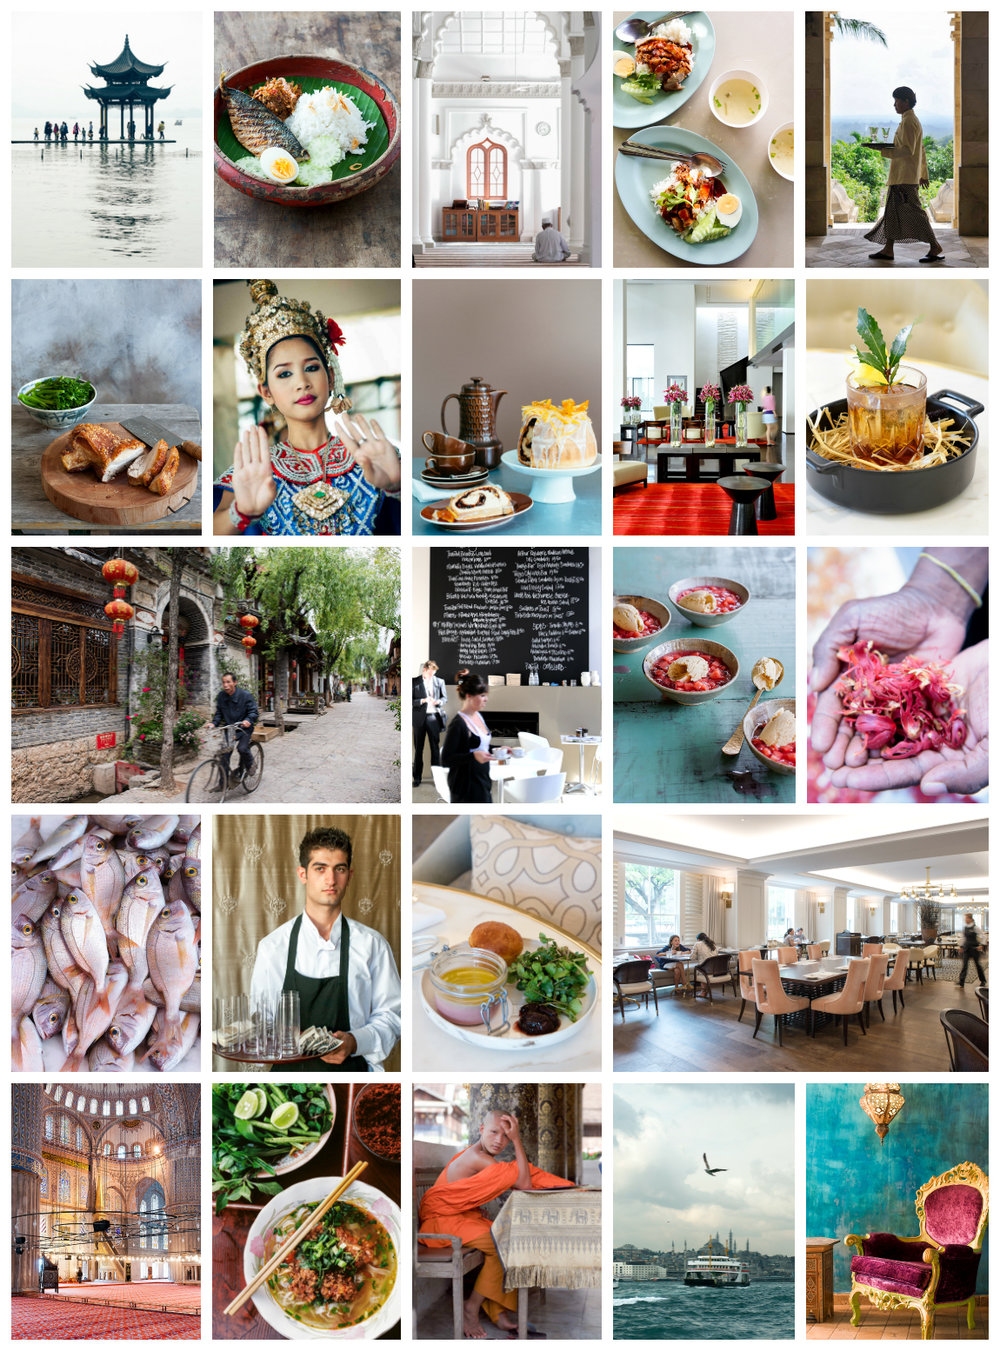 Leanne Kitchen's Portfolio